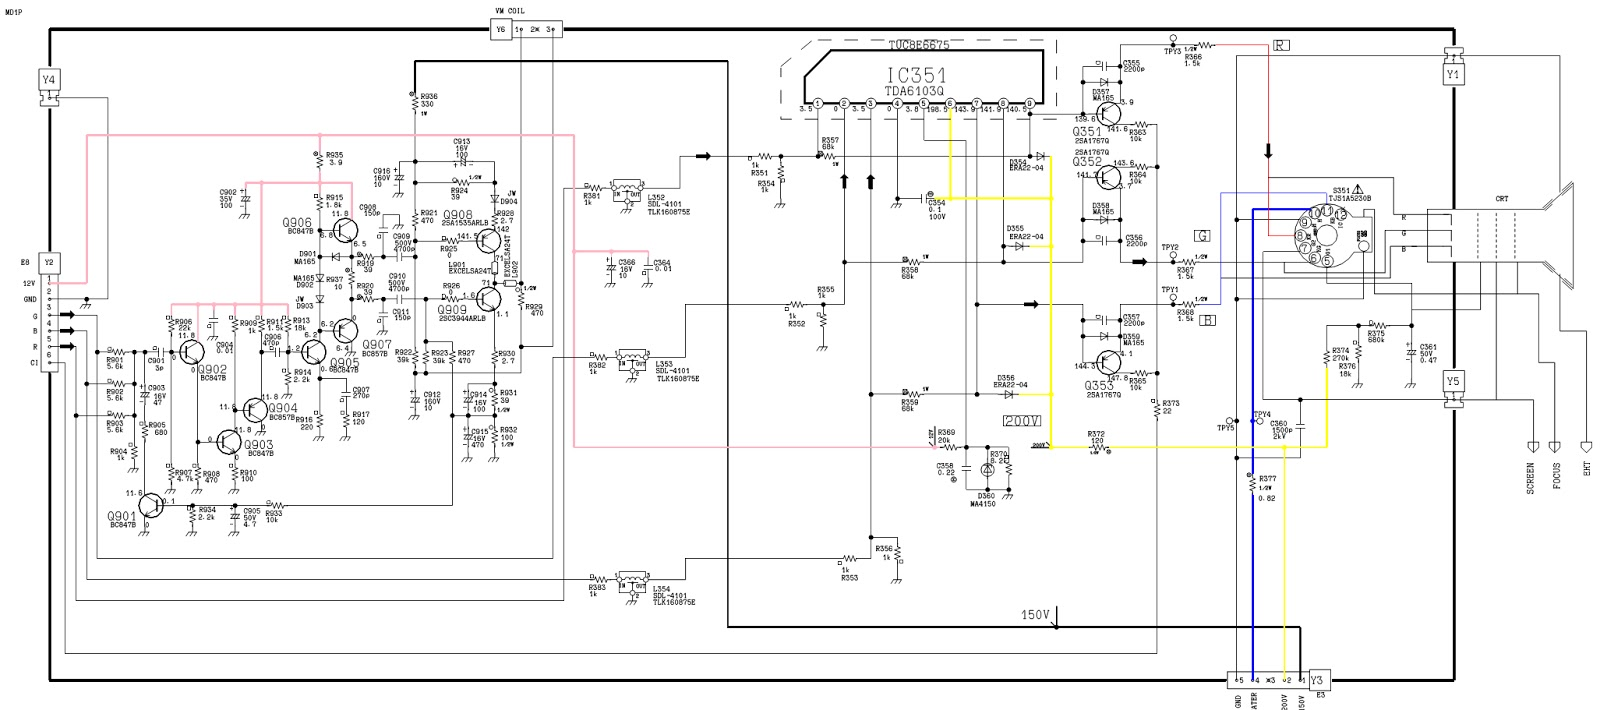 panasonic tx25md1 - power supply  smps  - video output - schematic  circuit diagram